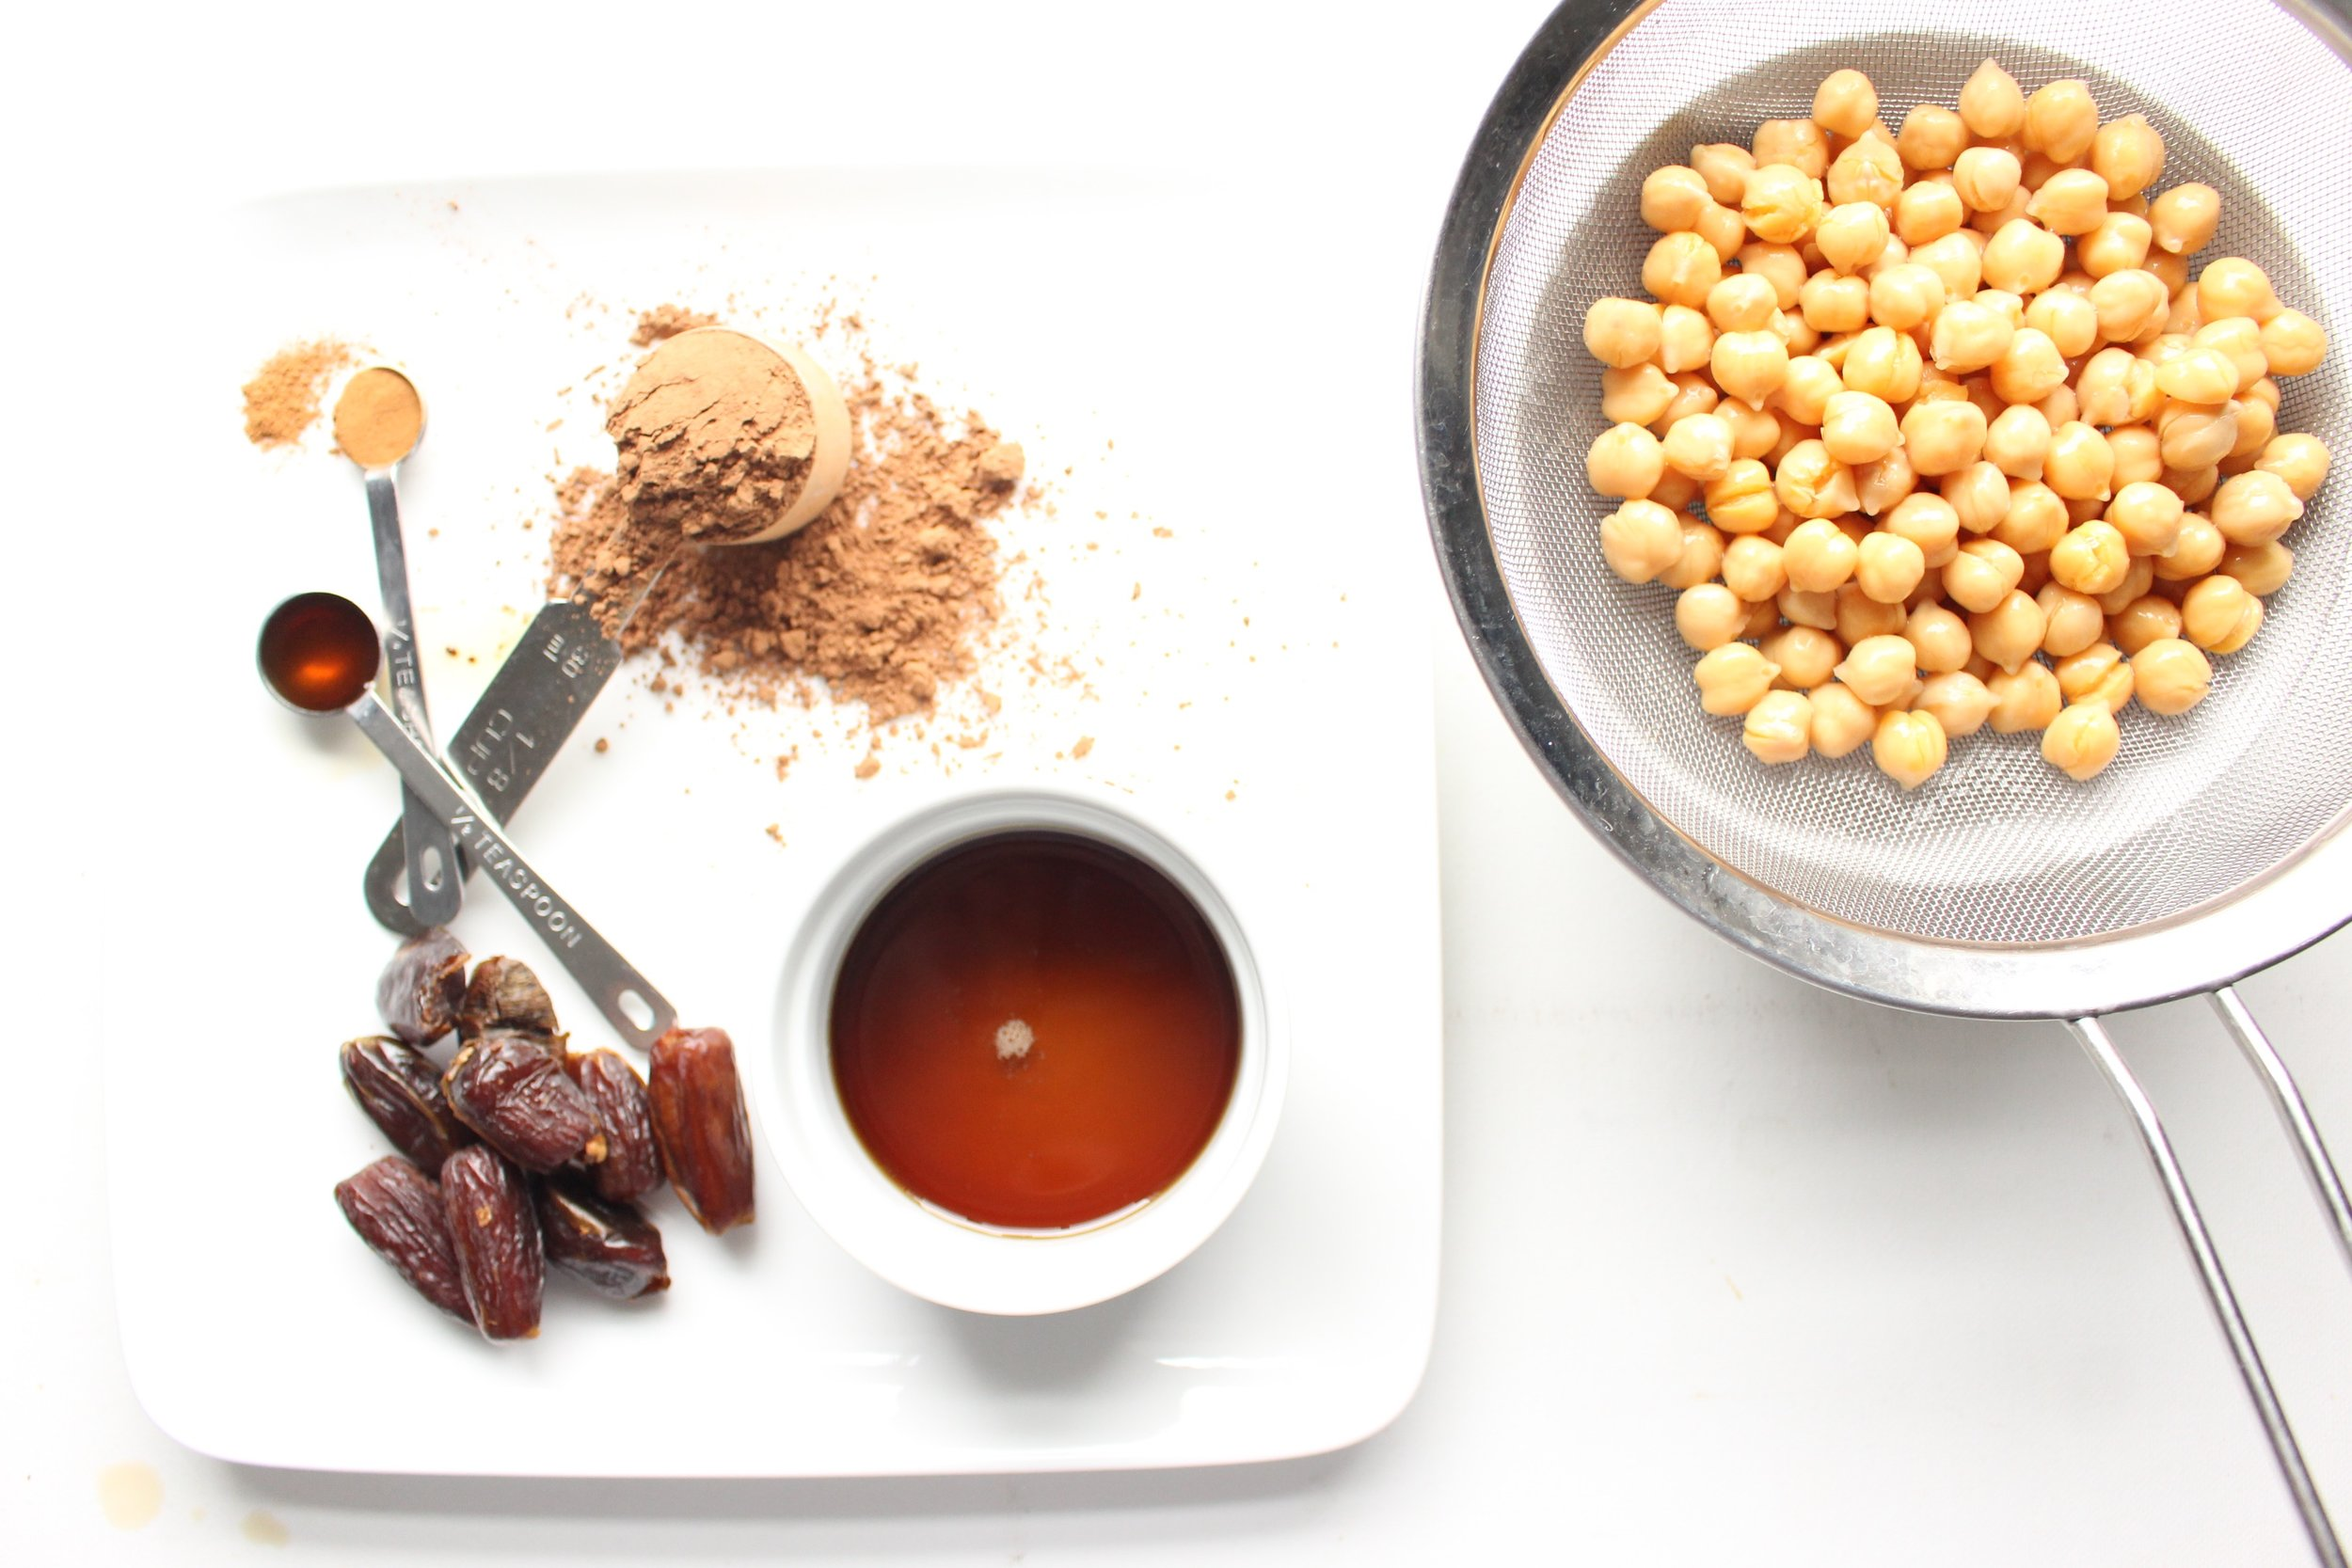 Chick peas, dates, maple syrup, unsweetened cocoa powder, vanilla, cinnamon, and salt.